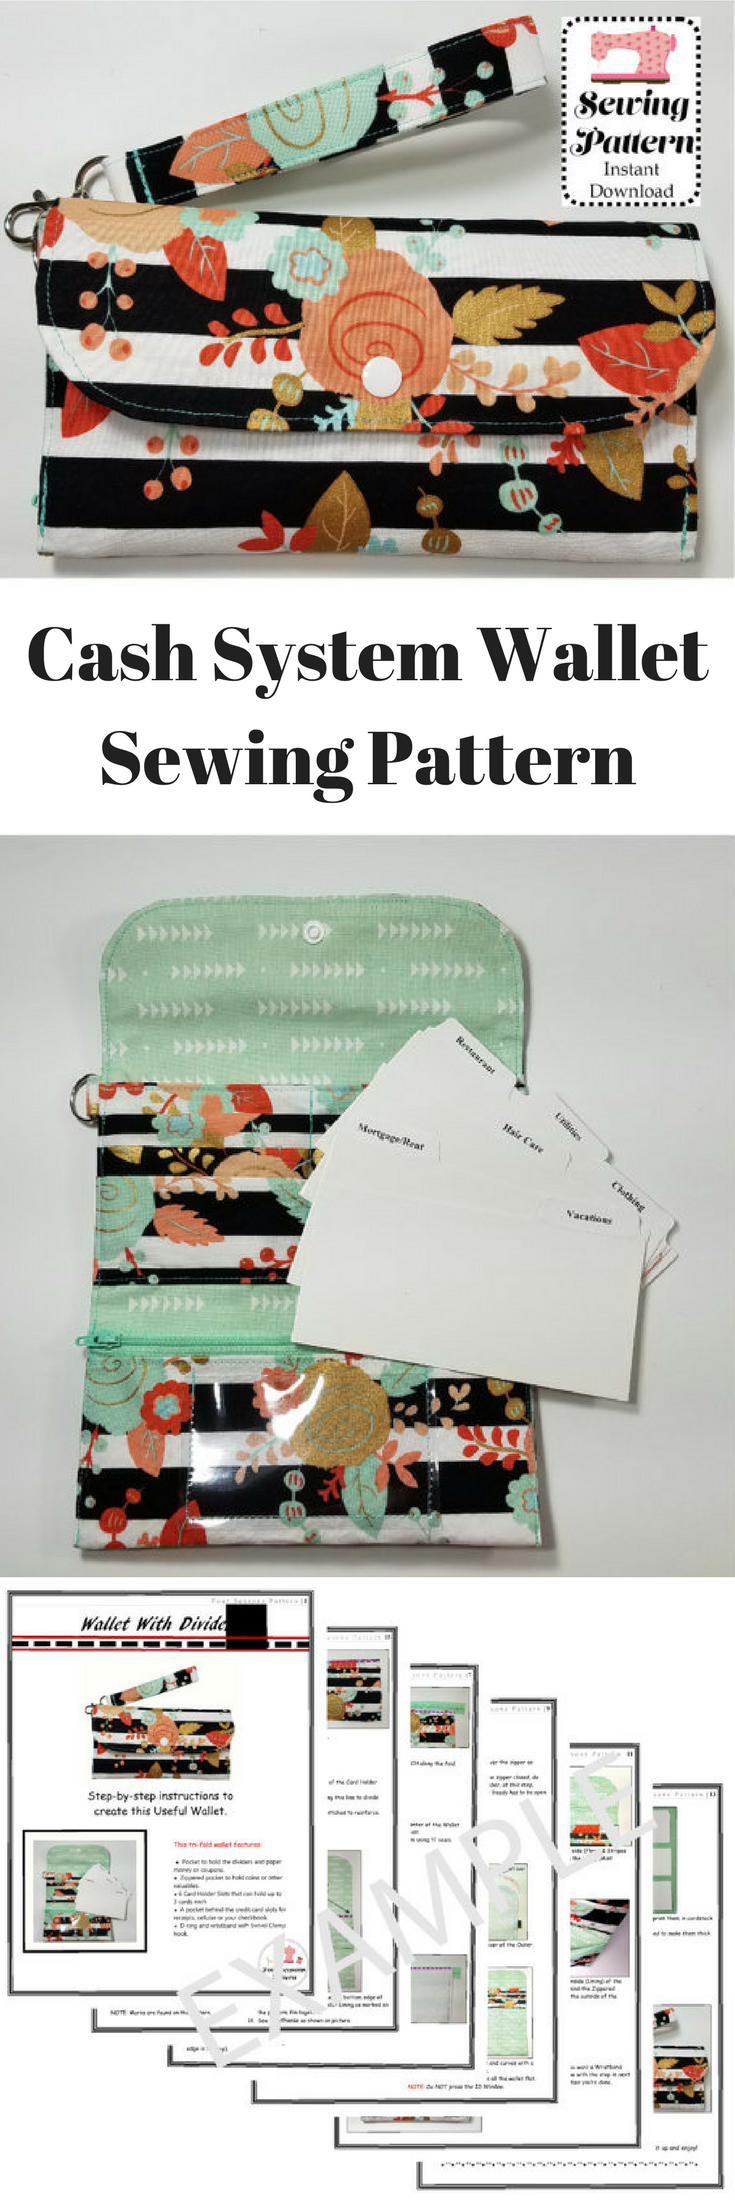 Cash System Wallet Sewing Pattern Printable PDF | Cash System Wallet with Dividers | Dave Ramsey Inspired Budgeting System #ad #budgeting #wallet #walletsystem #envelope #envelopesystem #cashenvelope #daveramsey #pattern #sewing #sewingpattern #printablepattern #printable #pdf